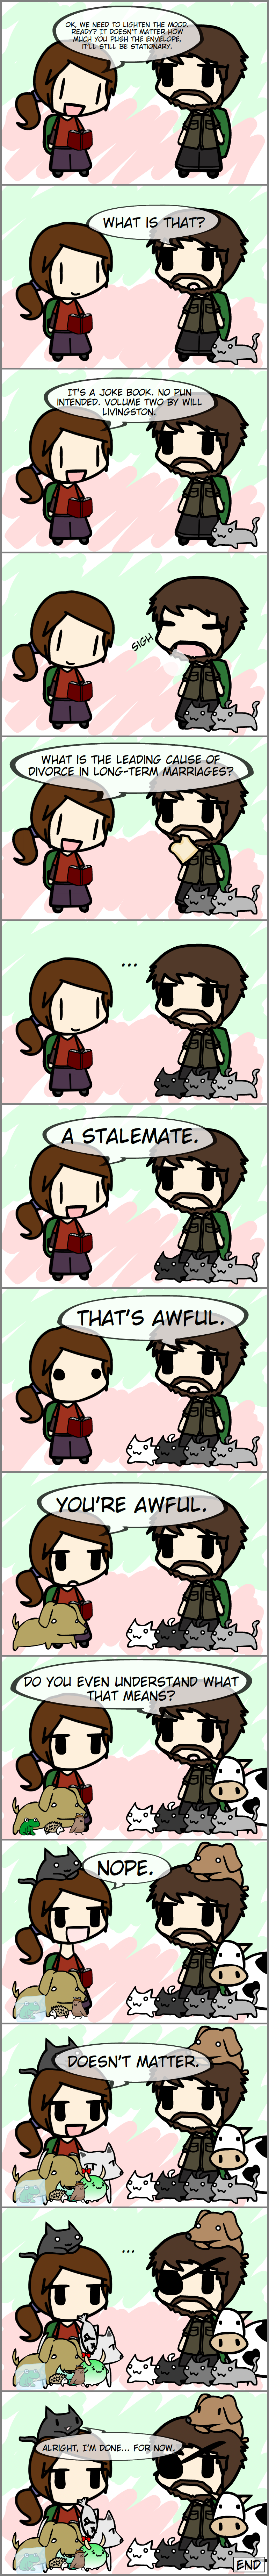 Walfas - The Last of Us Ellie's Jokes by grayfox5000